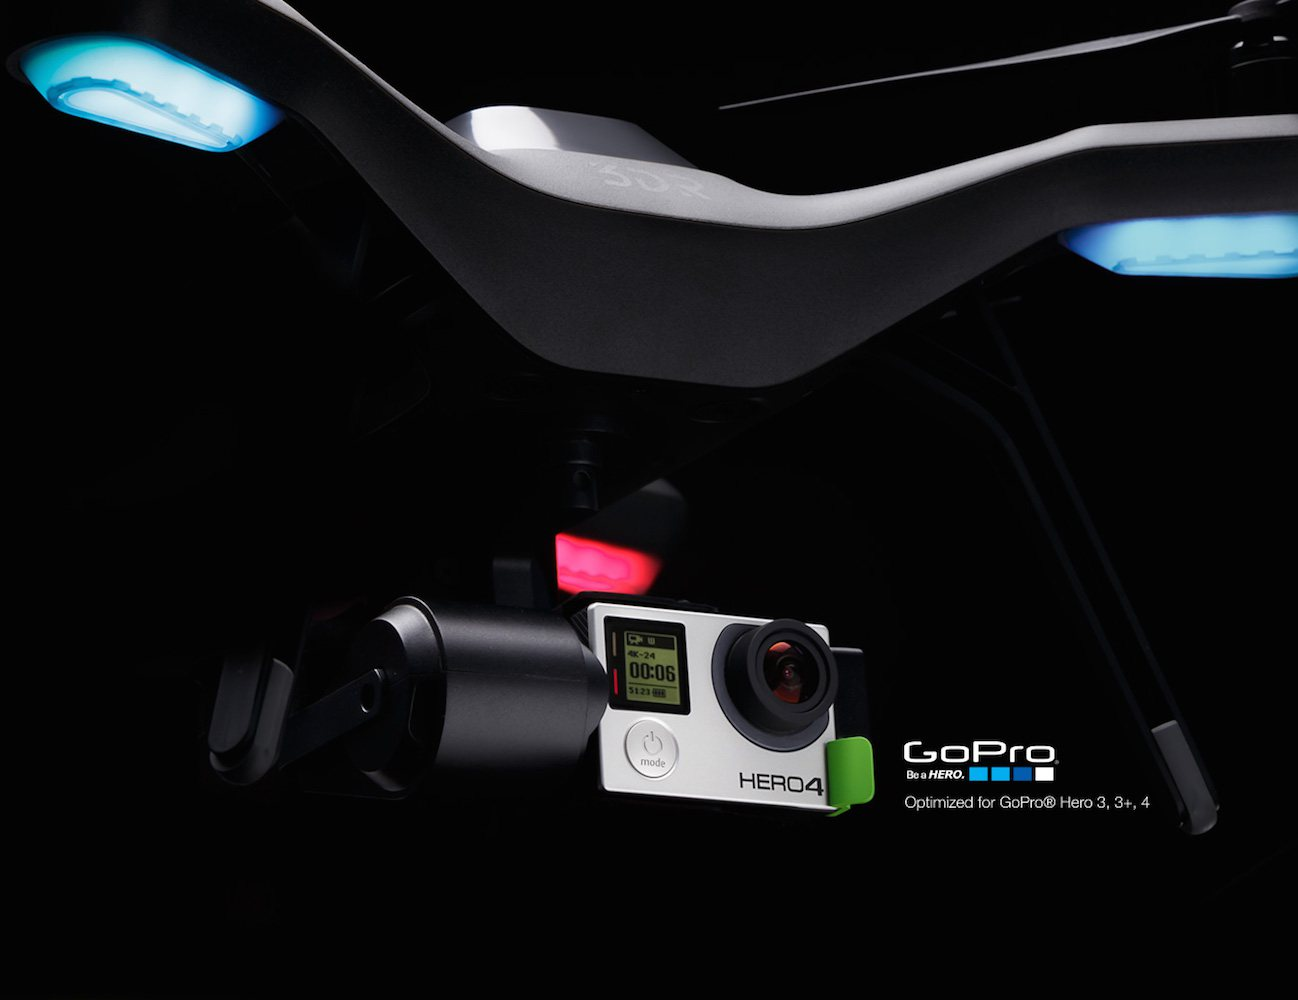 3DR Solo Smart Drone – Best For Professional Aerial Photos and Video